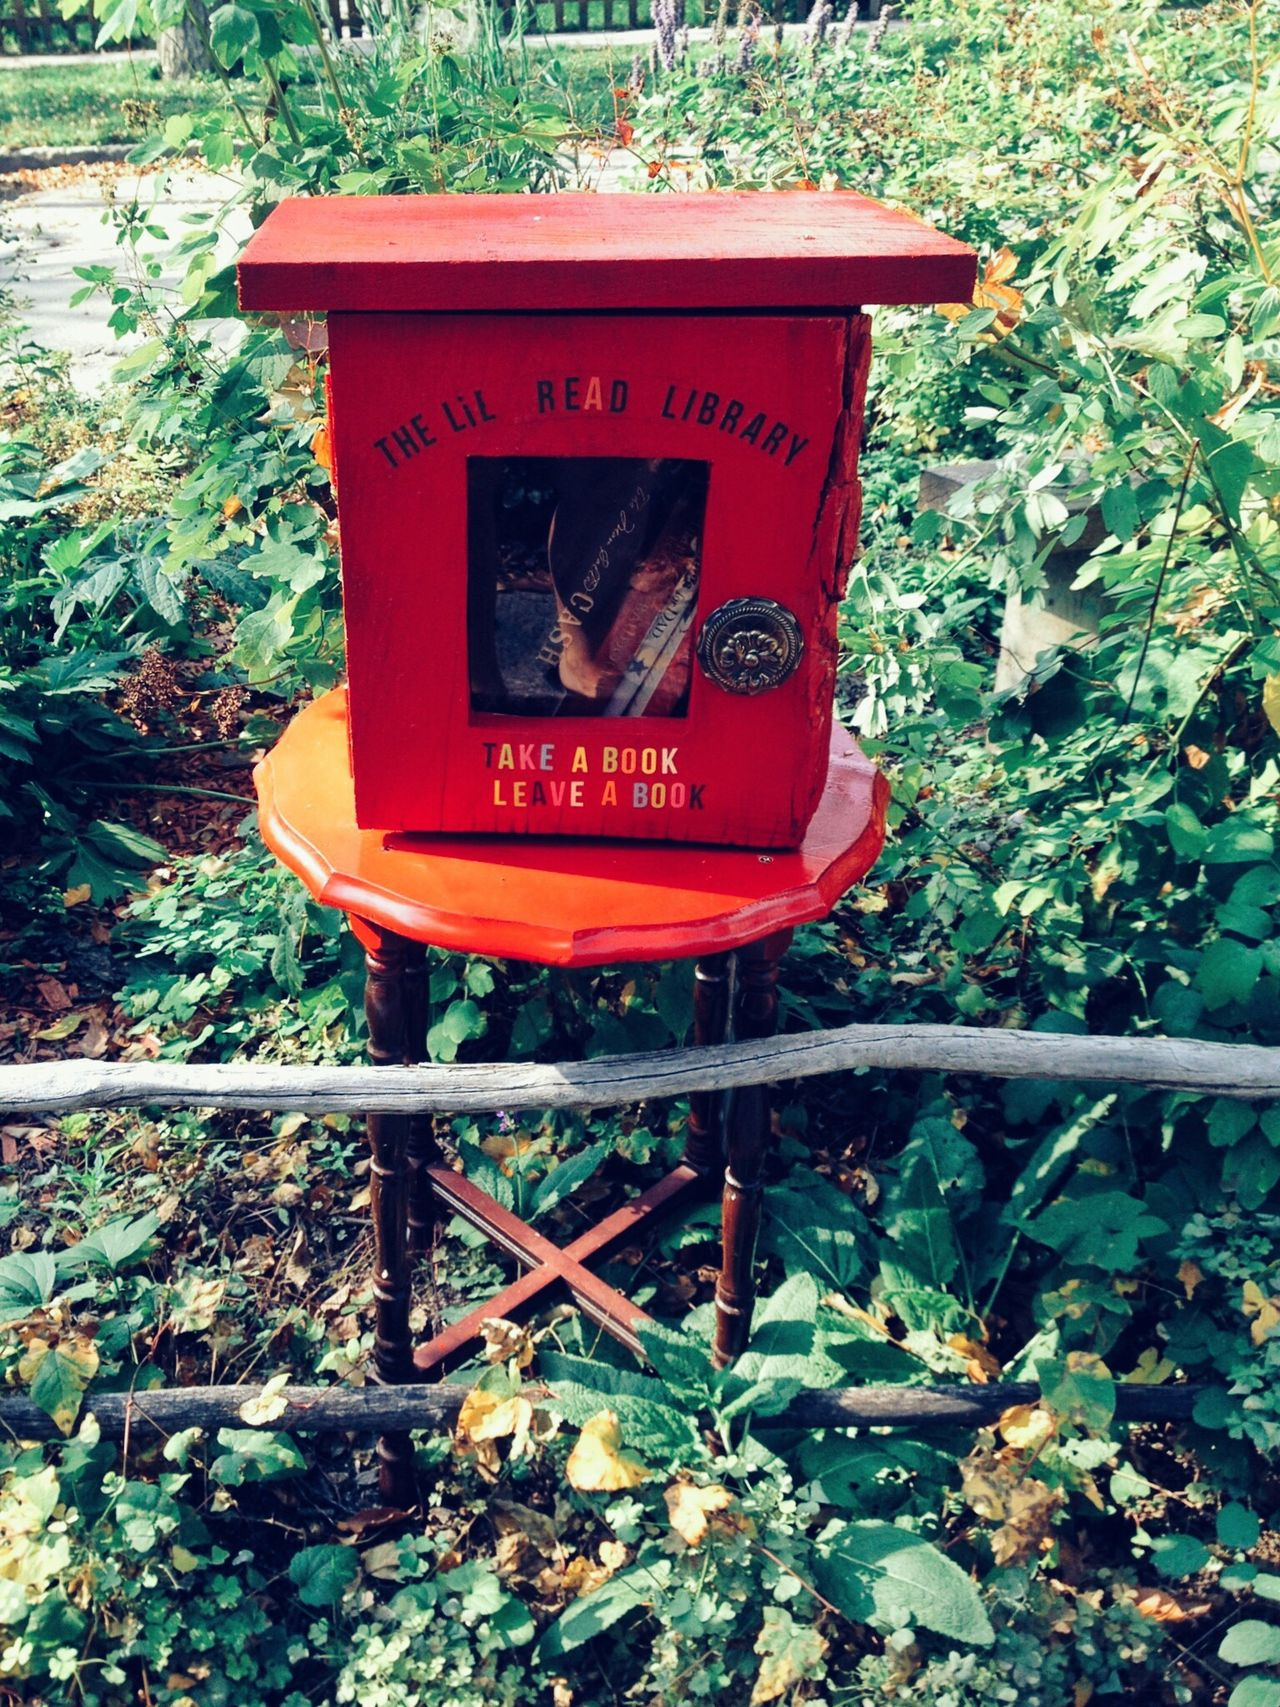 Sidewalk Library Borrow A Book Read Upcycled Neighbourhood Red Take A Book Return A Book Take A Book Leave A Book Check This Out Community Sharing  Book Share